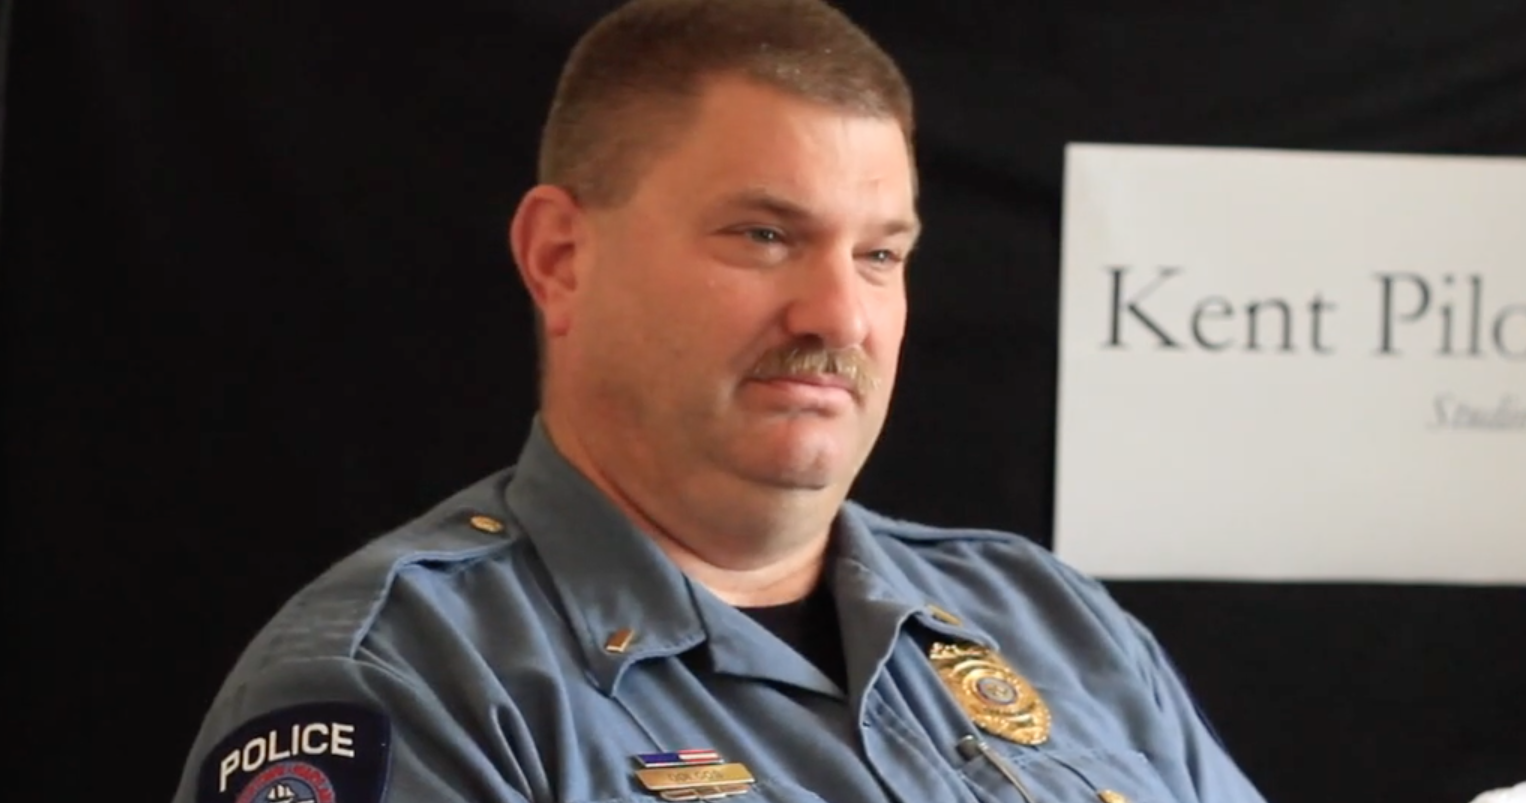 Search On For New Police Chief, Herz Sees Opportunity For Salary Savings, More Diverse Candidate